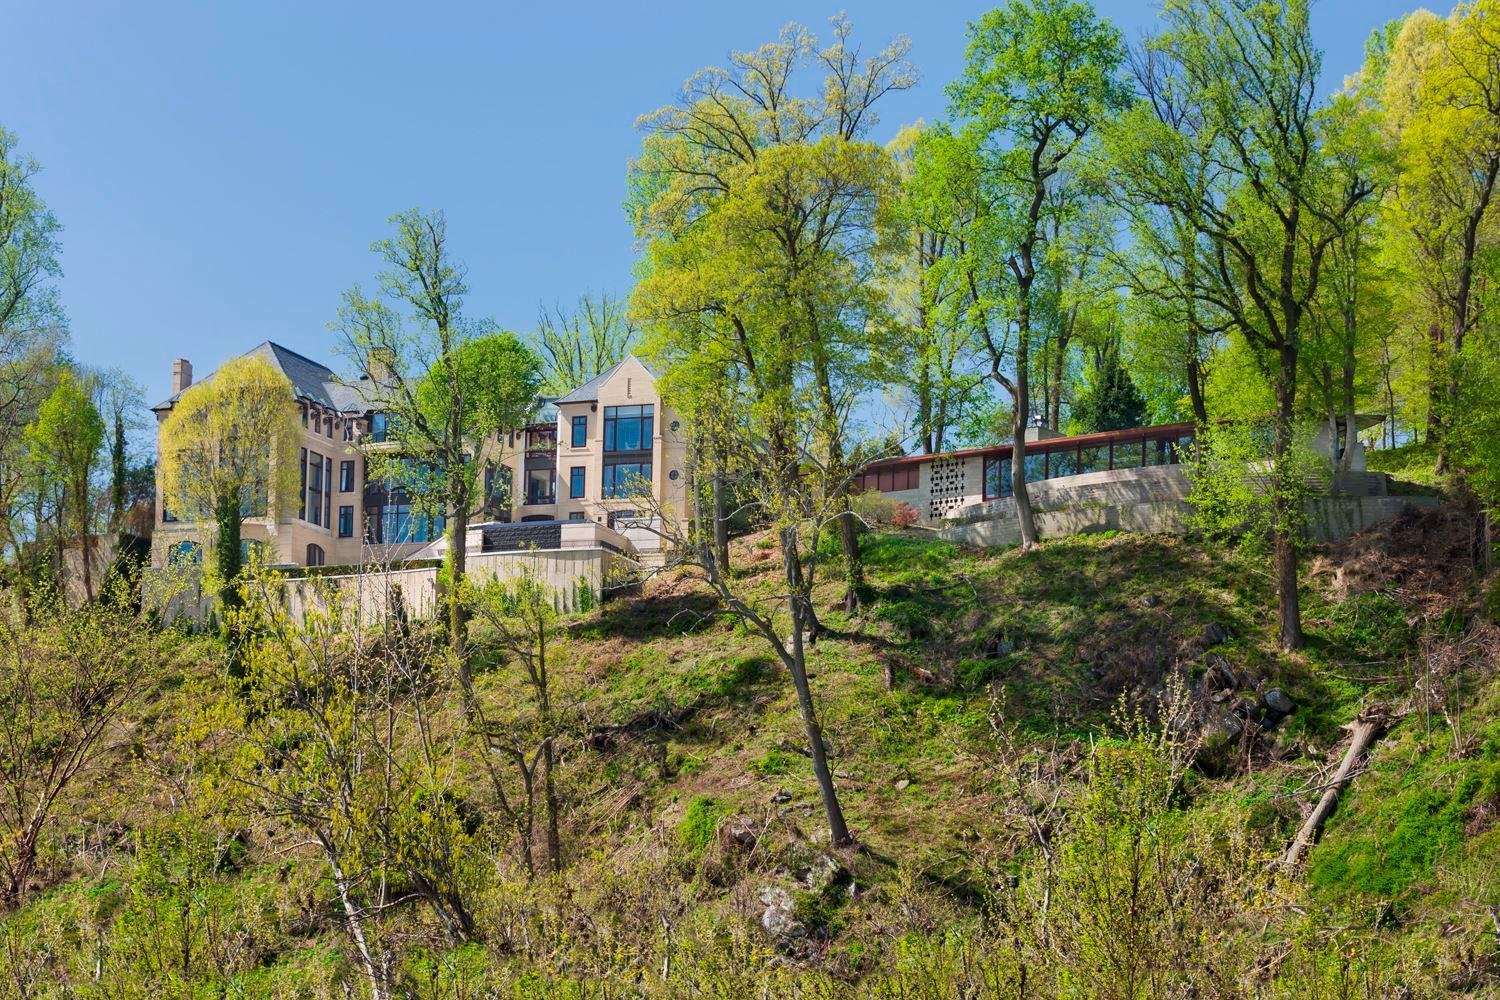 For $62.95 million, you could buy more than 1700 Tesla model 3's or almost 70,000 pairs of Christian Louboutin shoes. Or you can buy a 48,000+-square-foot mansion overlooking the Potomac River with nine bedrooms, 20 bathrooms, a garage that can accommodate over 30 cars and a guest house designed by Frank Lloyd Wright.{ } (Image: Gordon Beal)